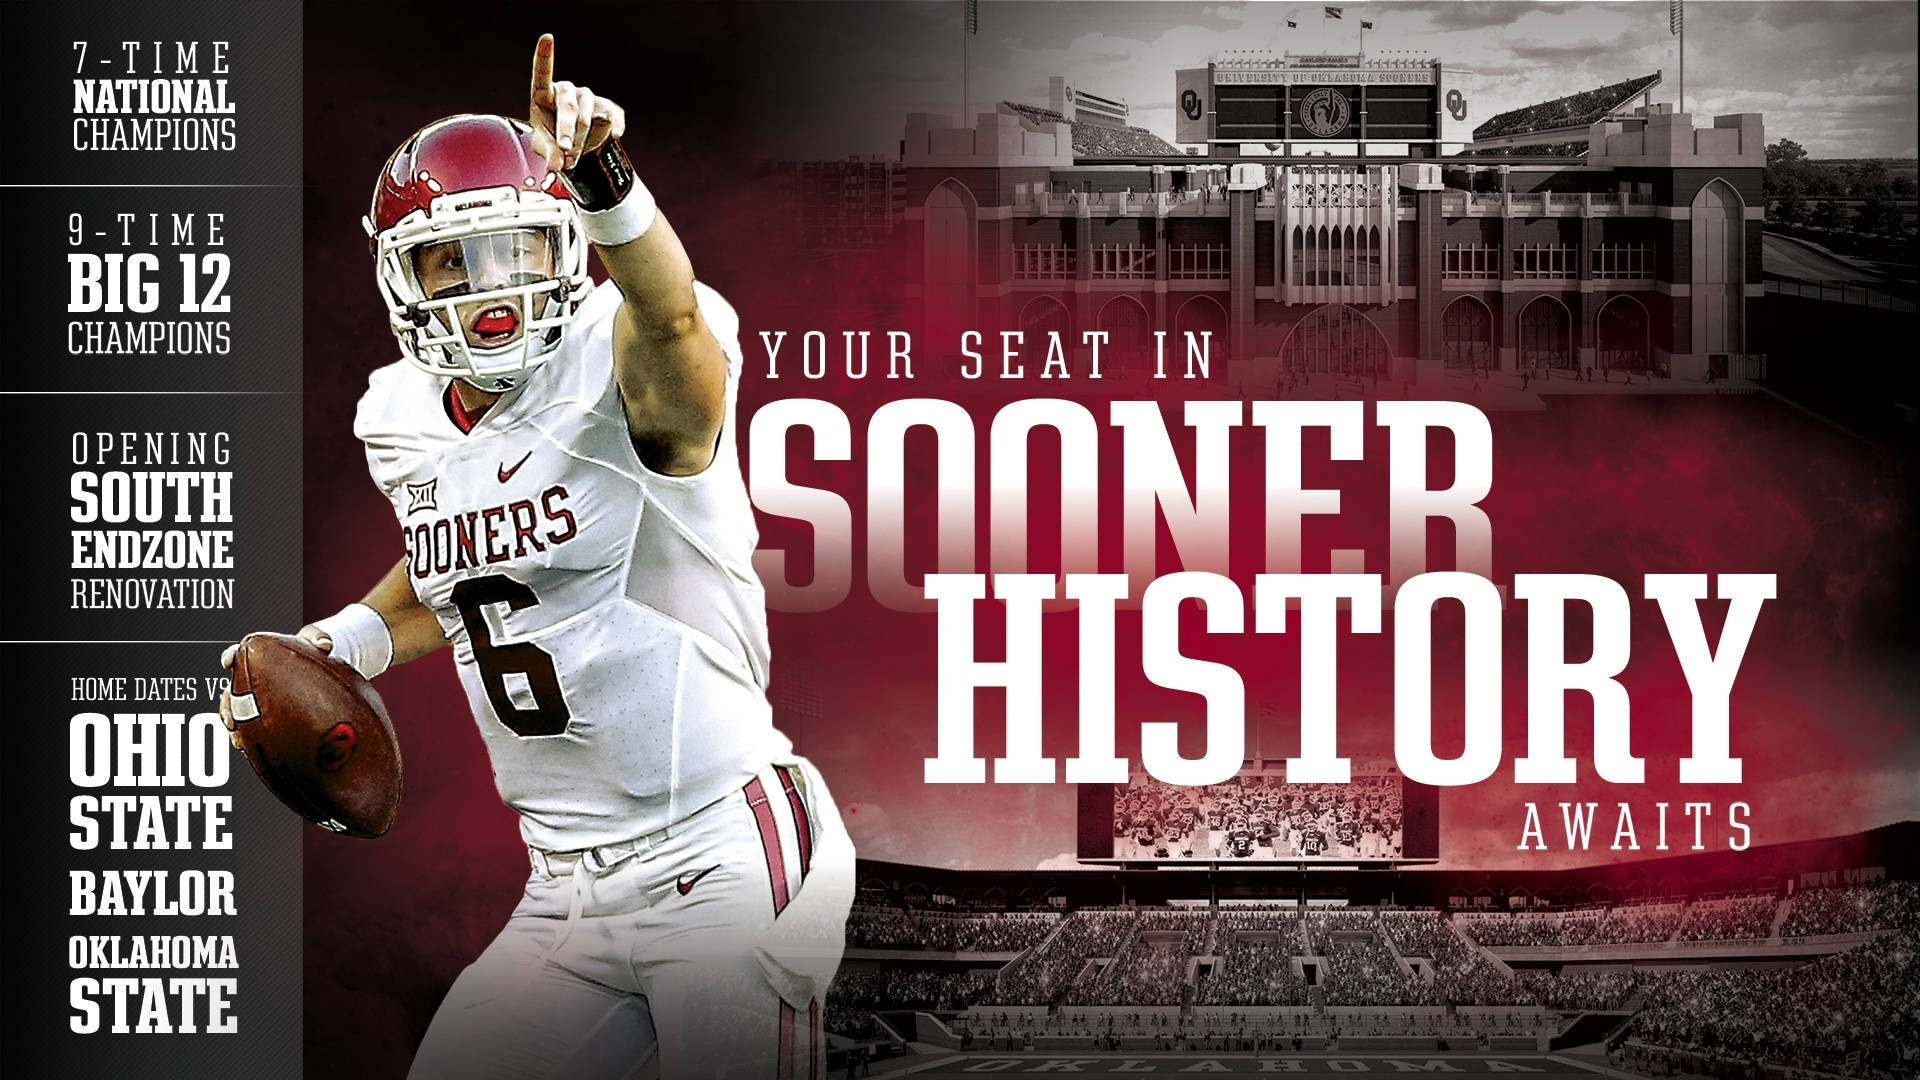 Title : season ticket renewals due march 31 – oklahoma sooners. Dimension : 1920 x 1080. File Type : JPG/JPEG